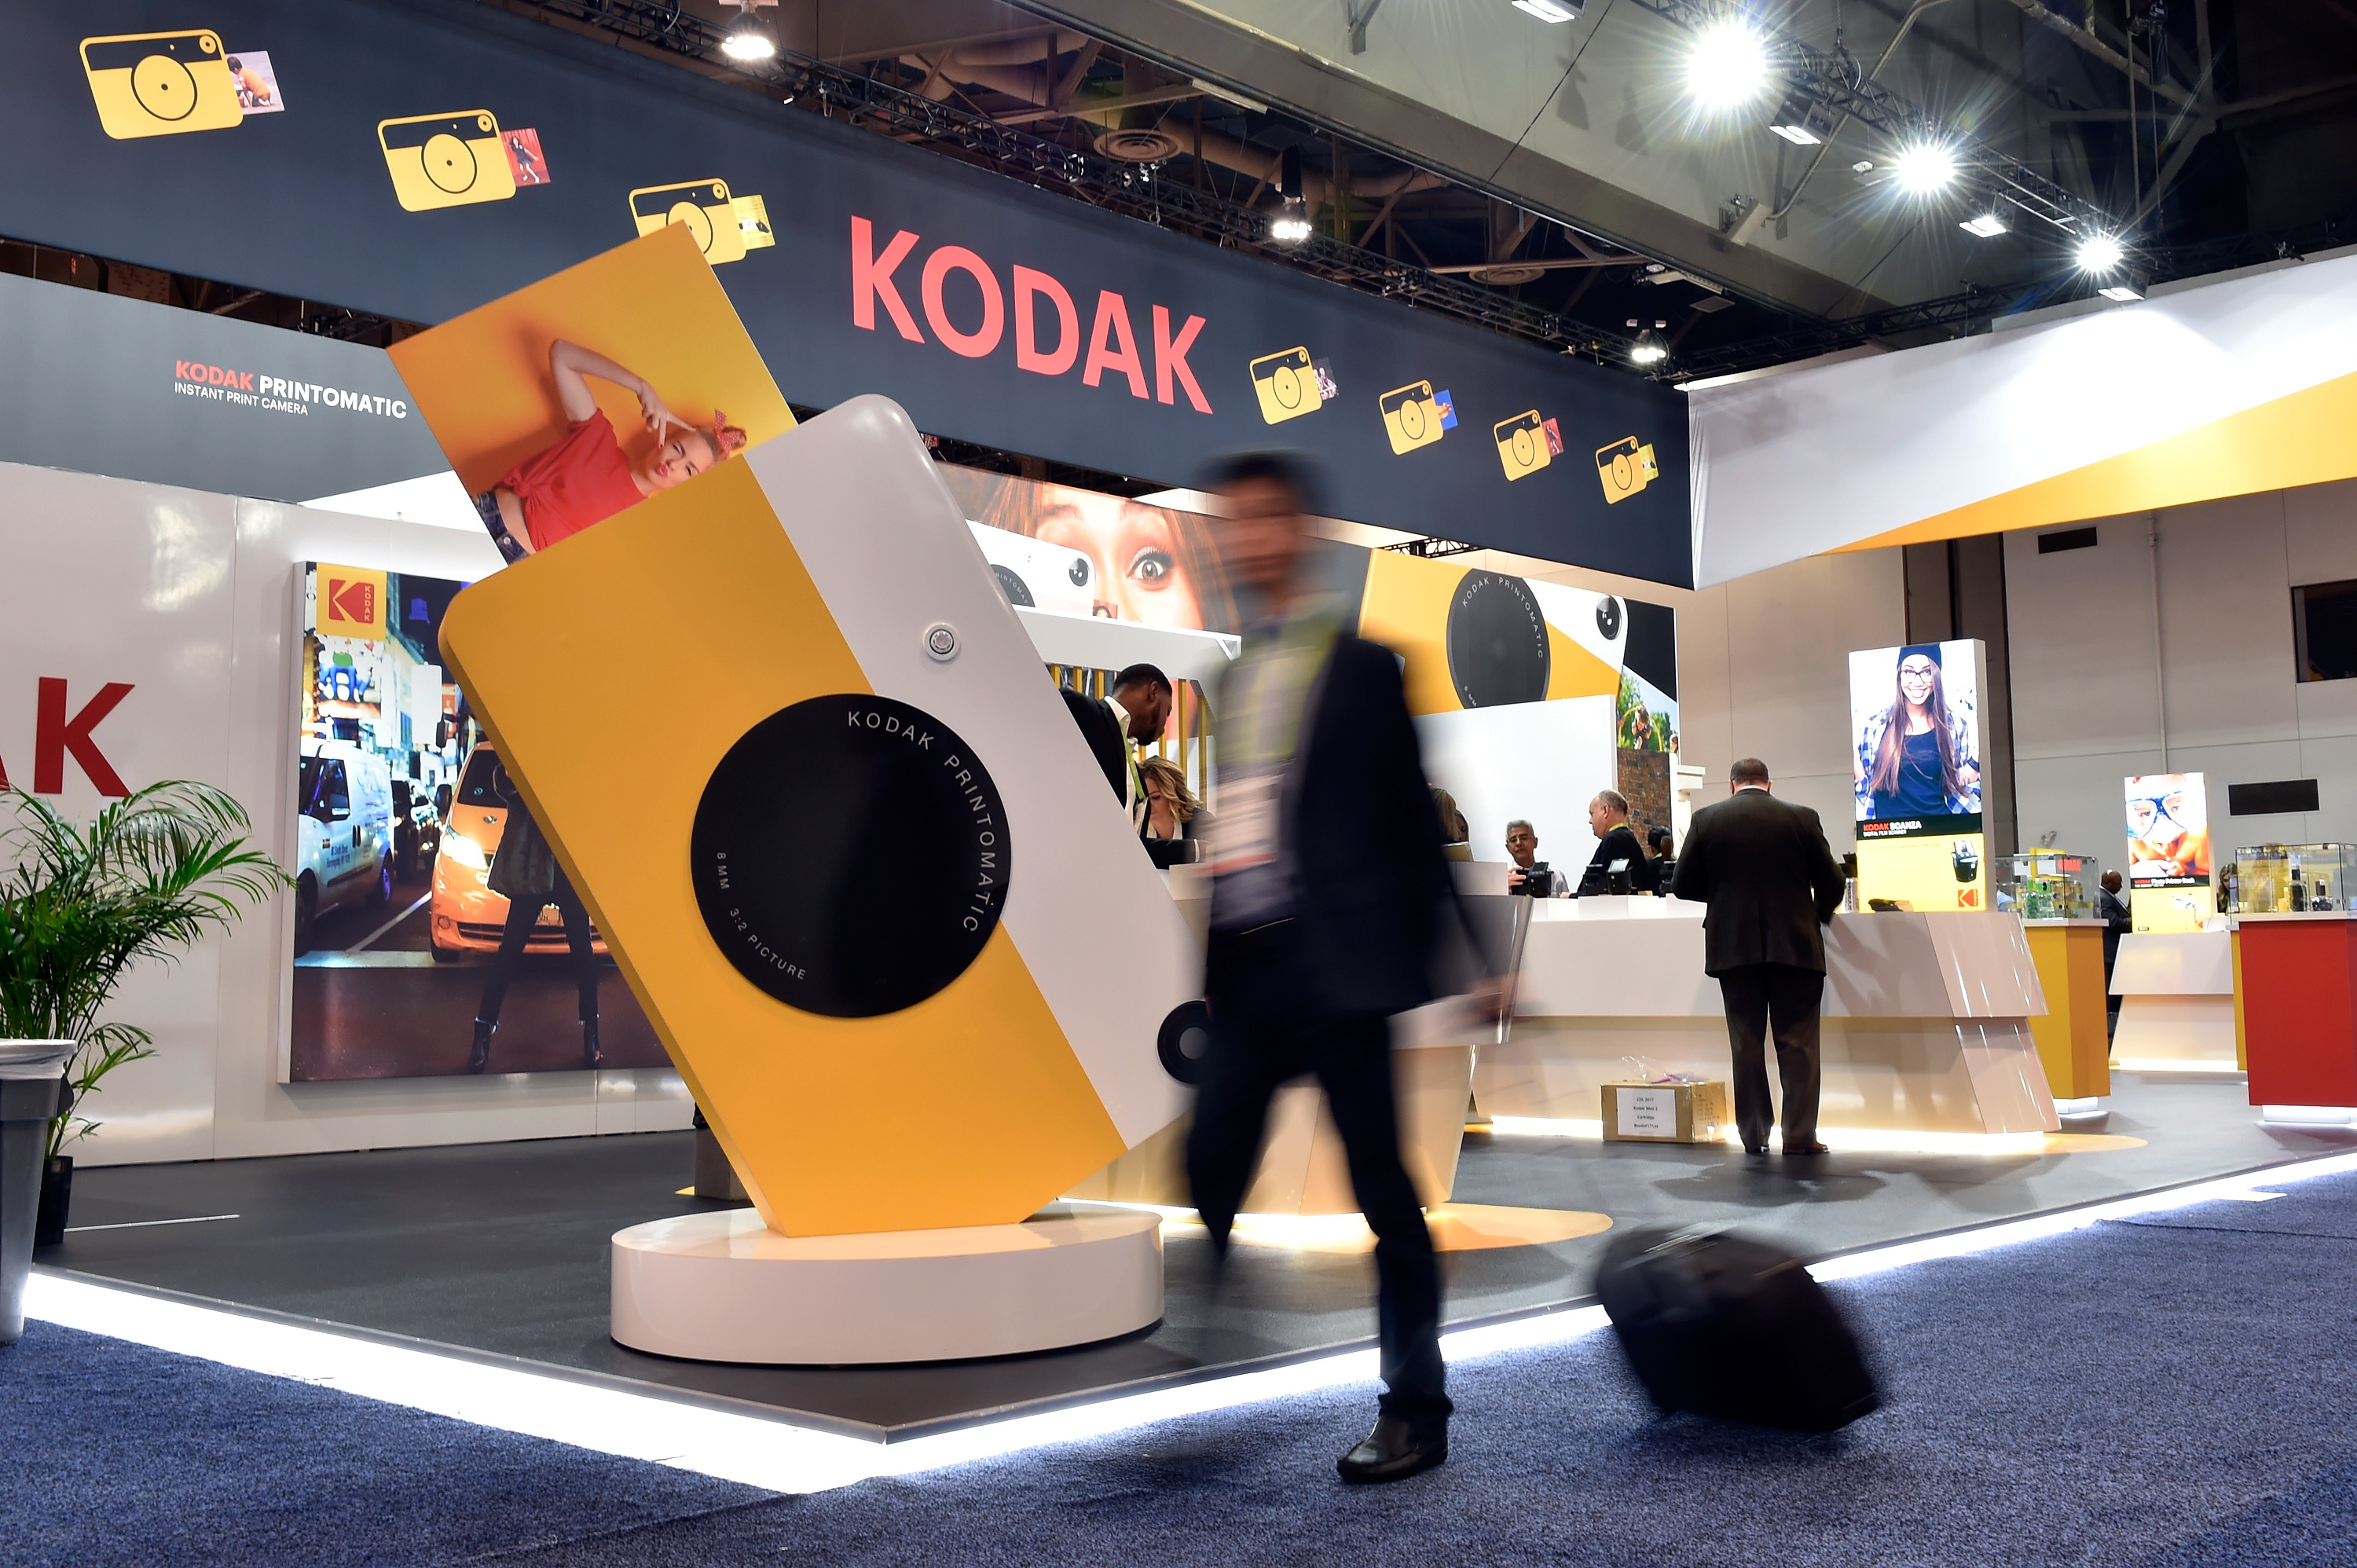 The 'Kodak Moment' That Could Revolutionize Business